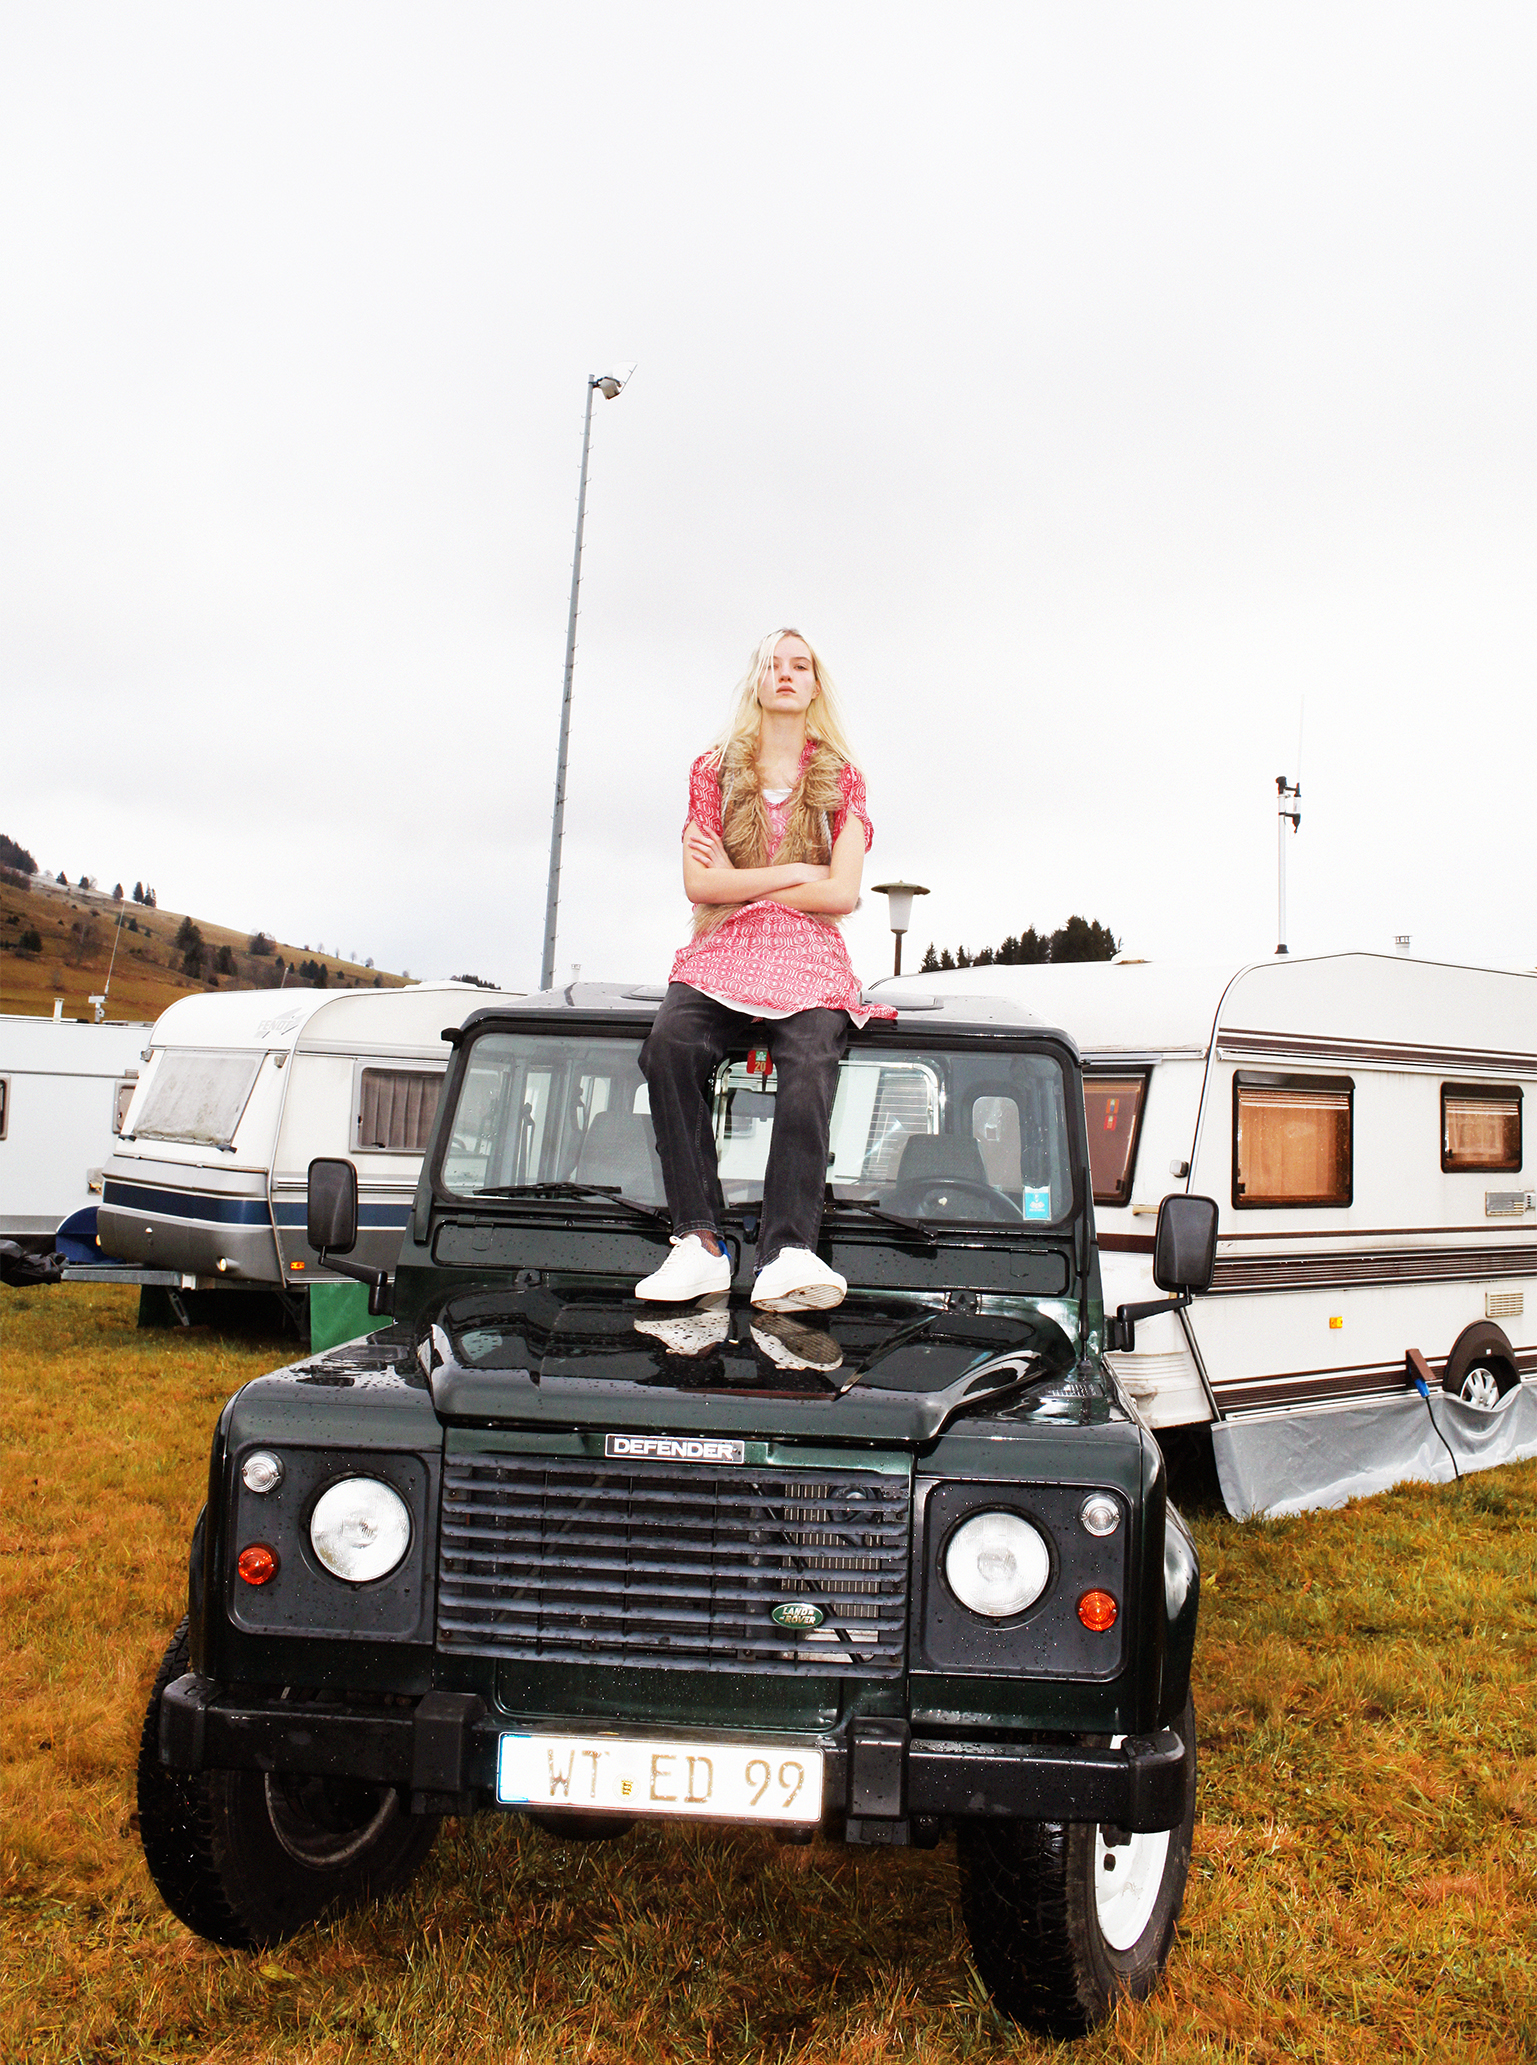 second hand clothes Vestiare Collective Defender Jeep Camping Schwarzwald